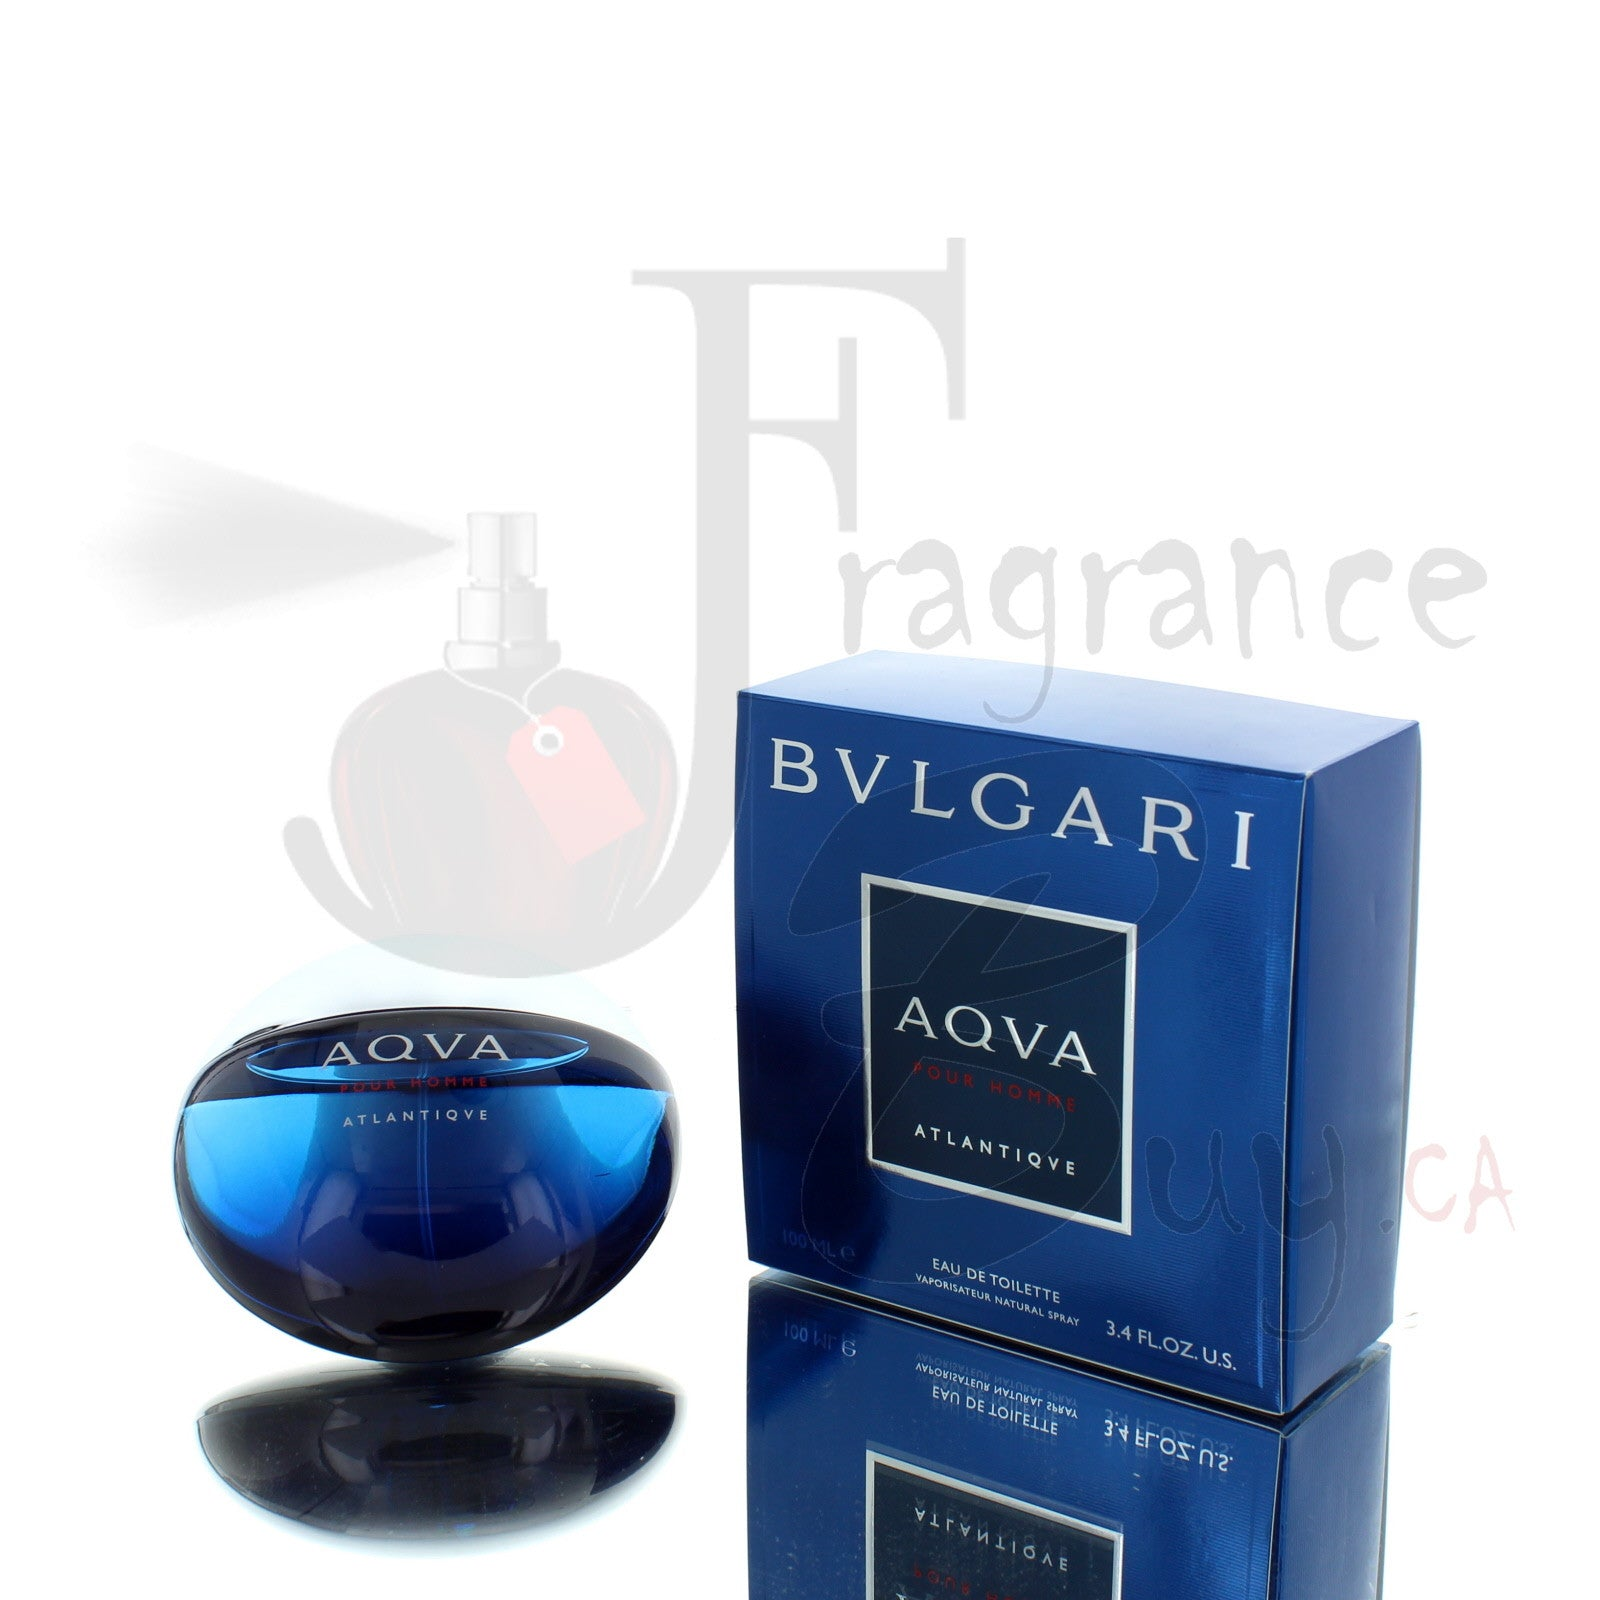 Bvlgari Aqva Atlantique For Man